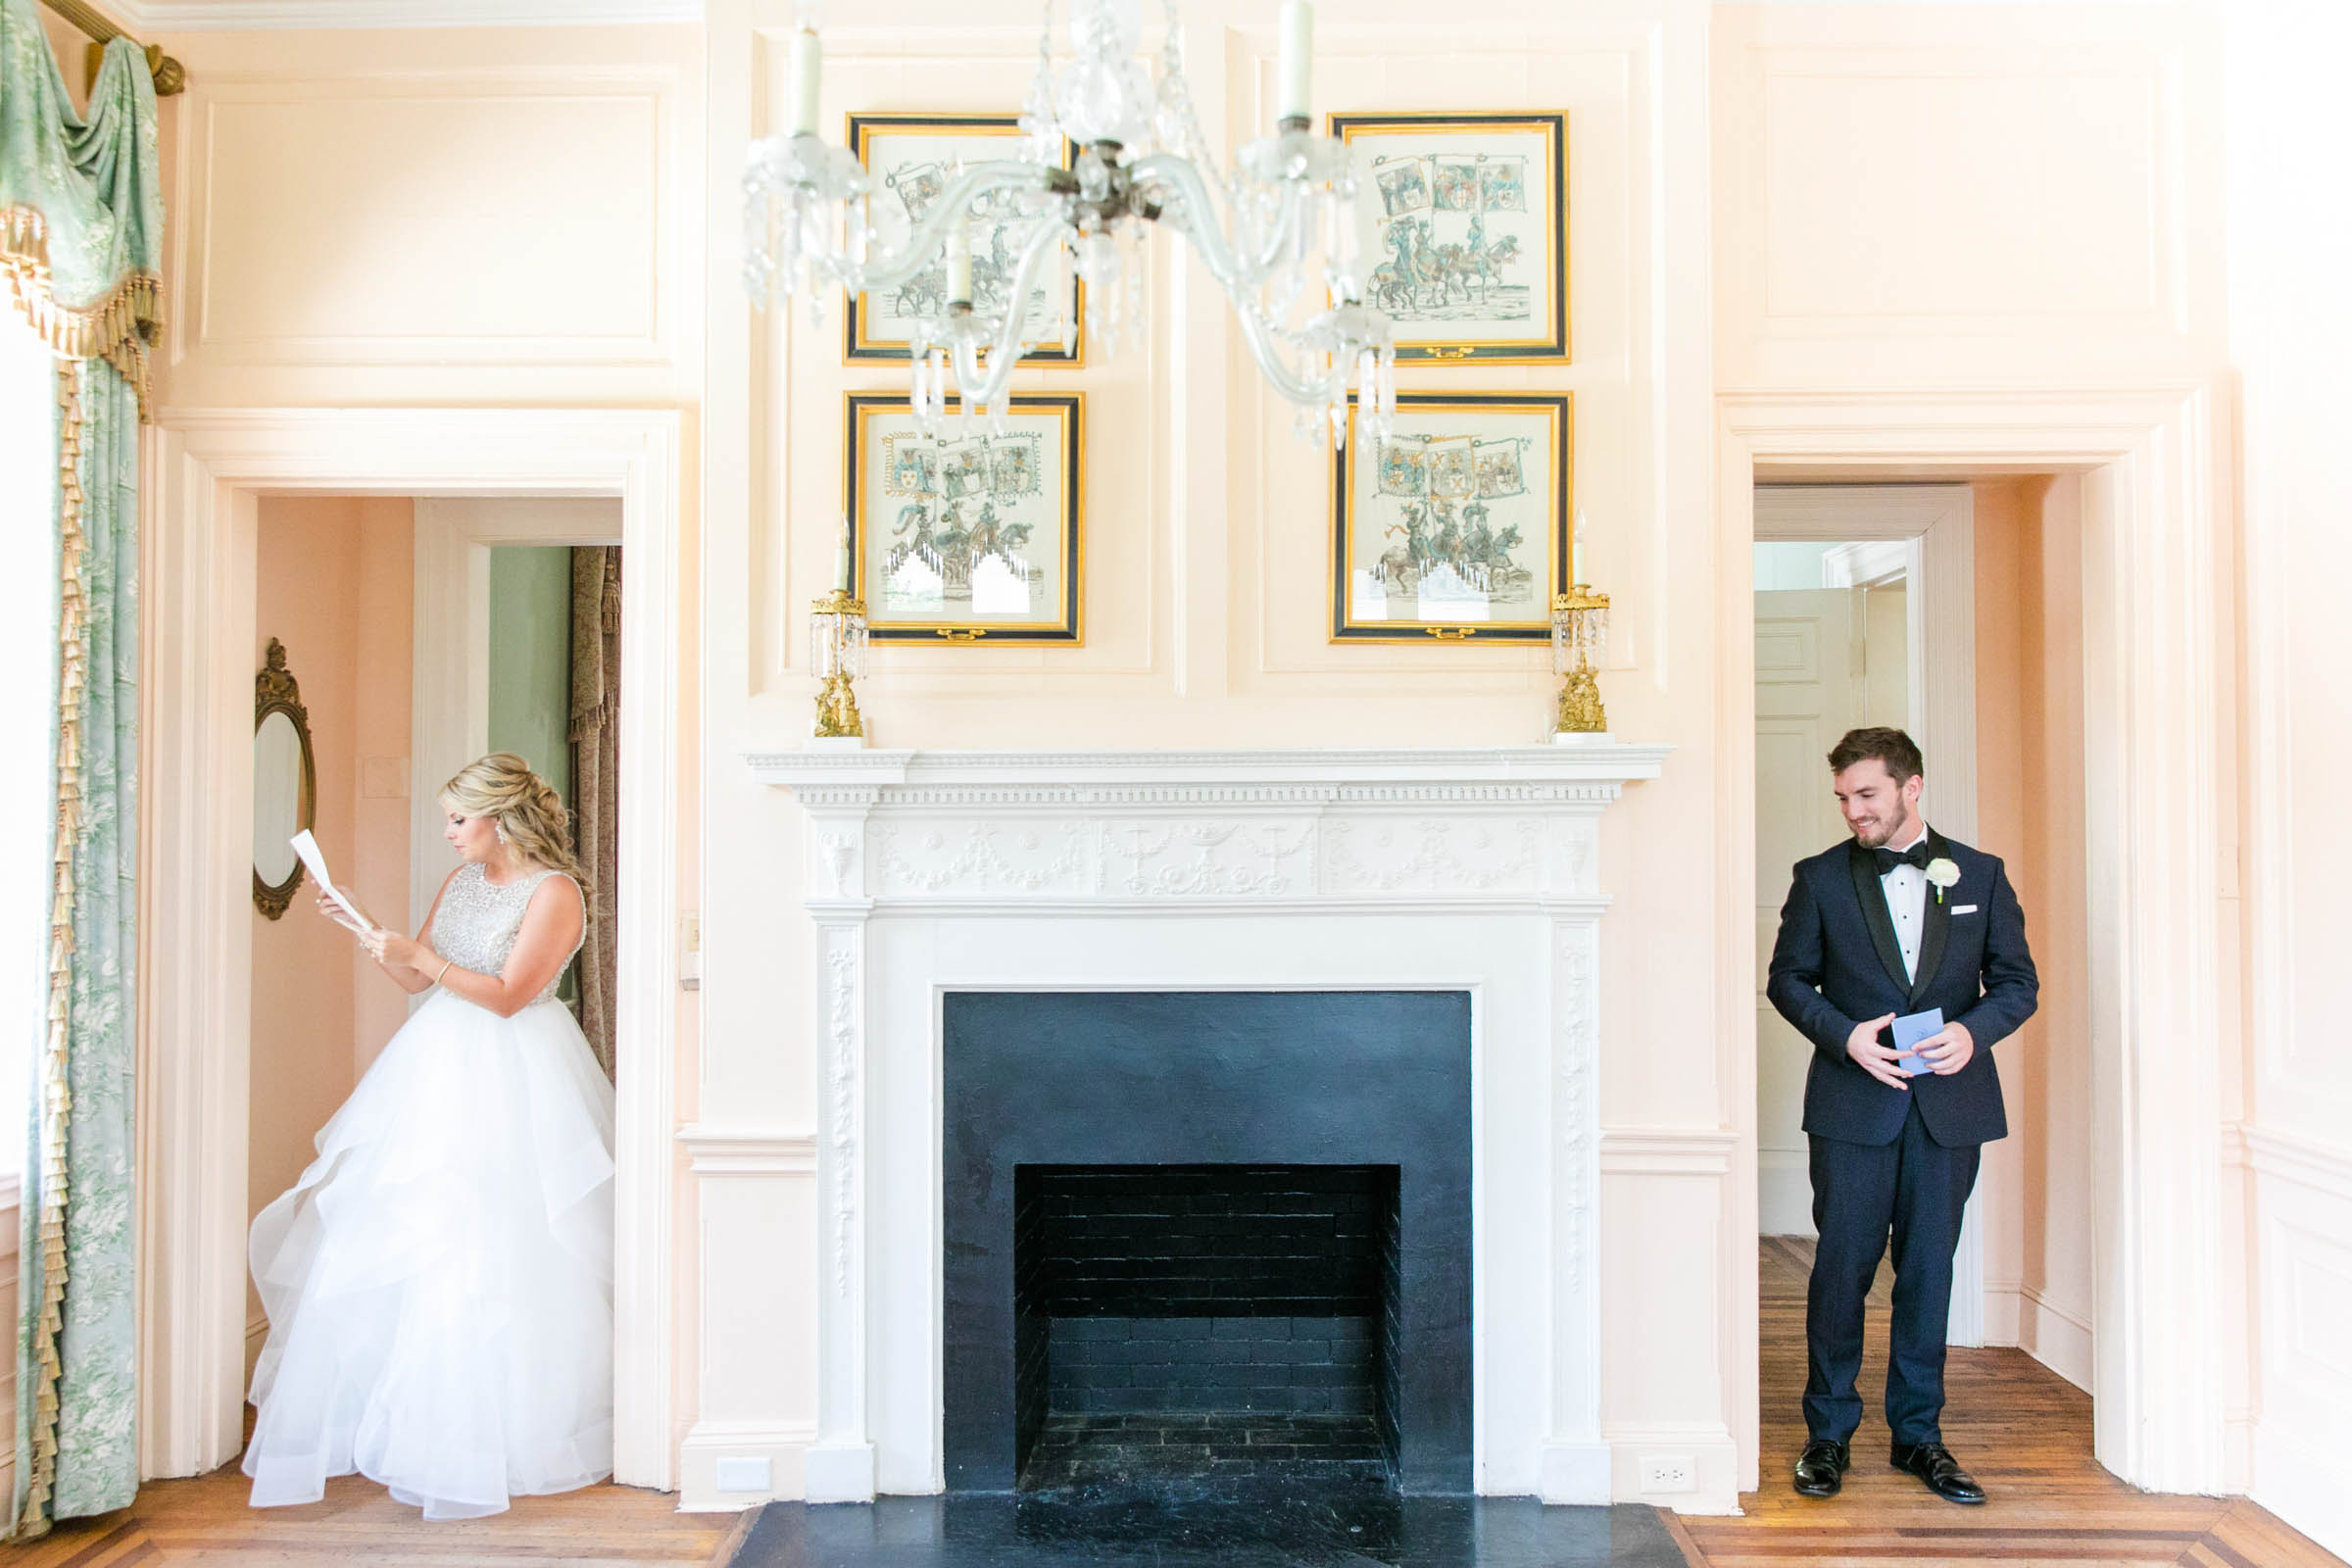 Bride and groom reading on either side of fireplace - photo by Dana Cubbage Weddings